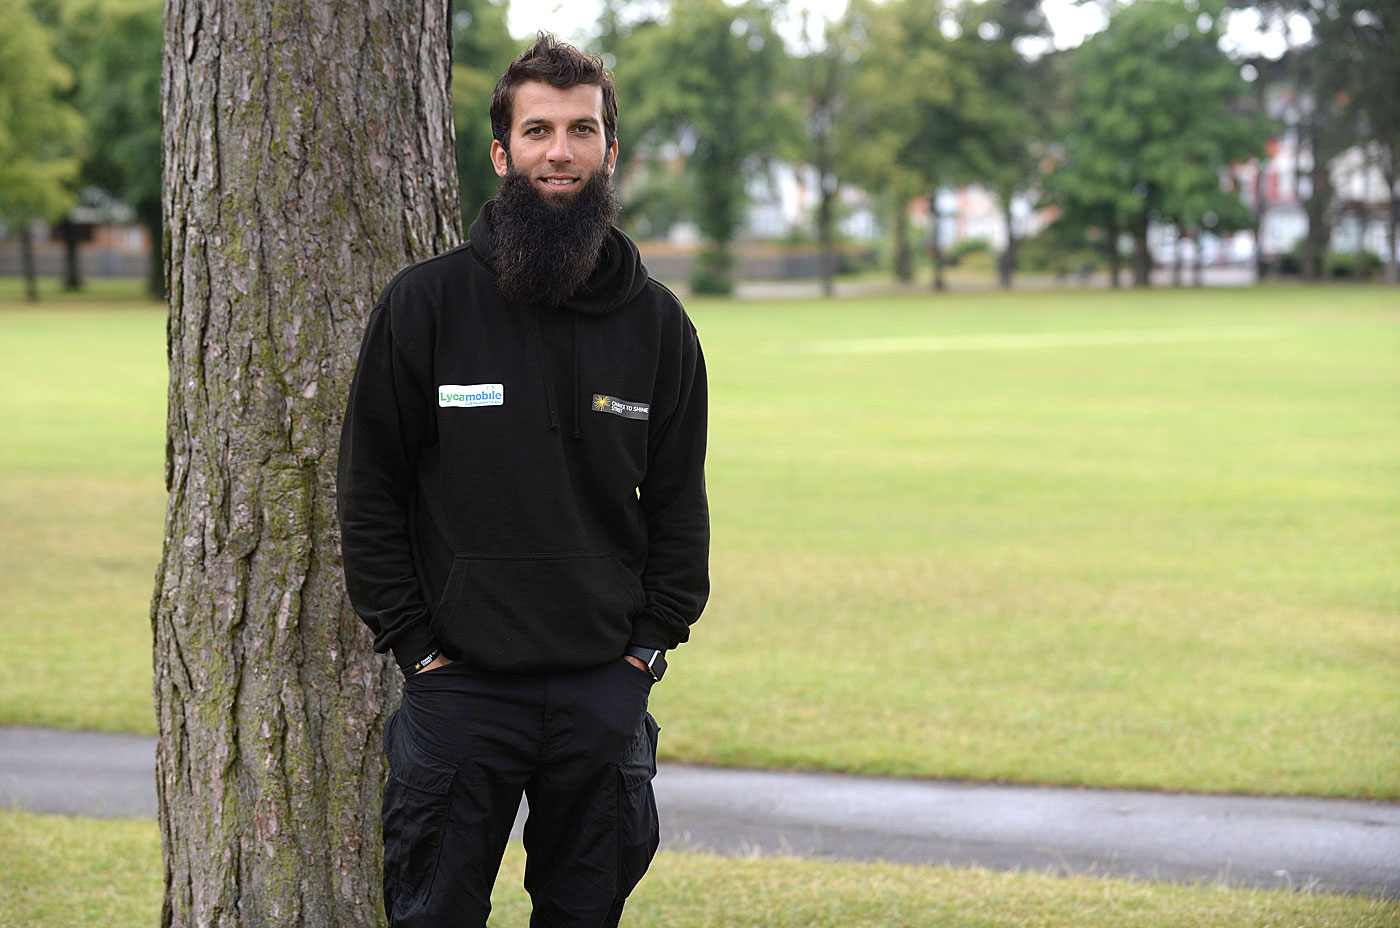 Moeen Ali at Sparkhill Park